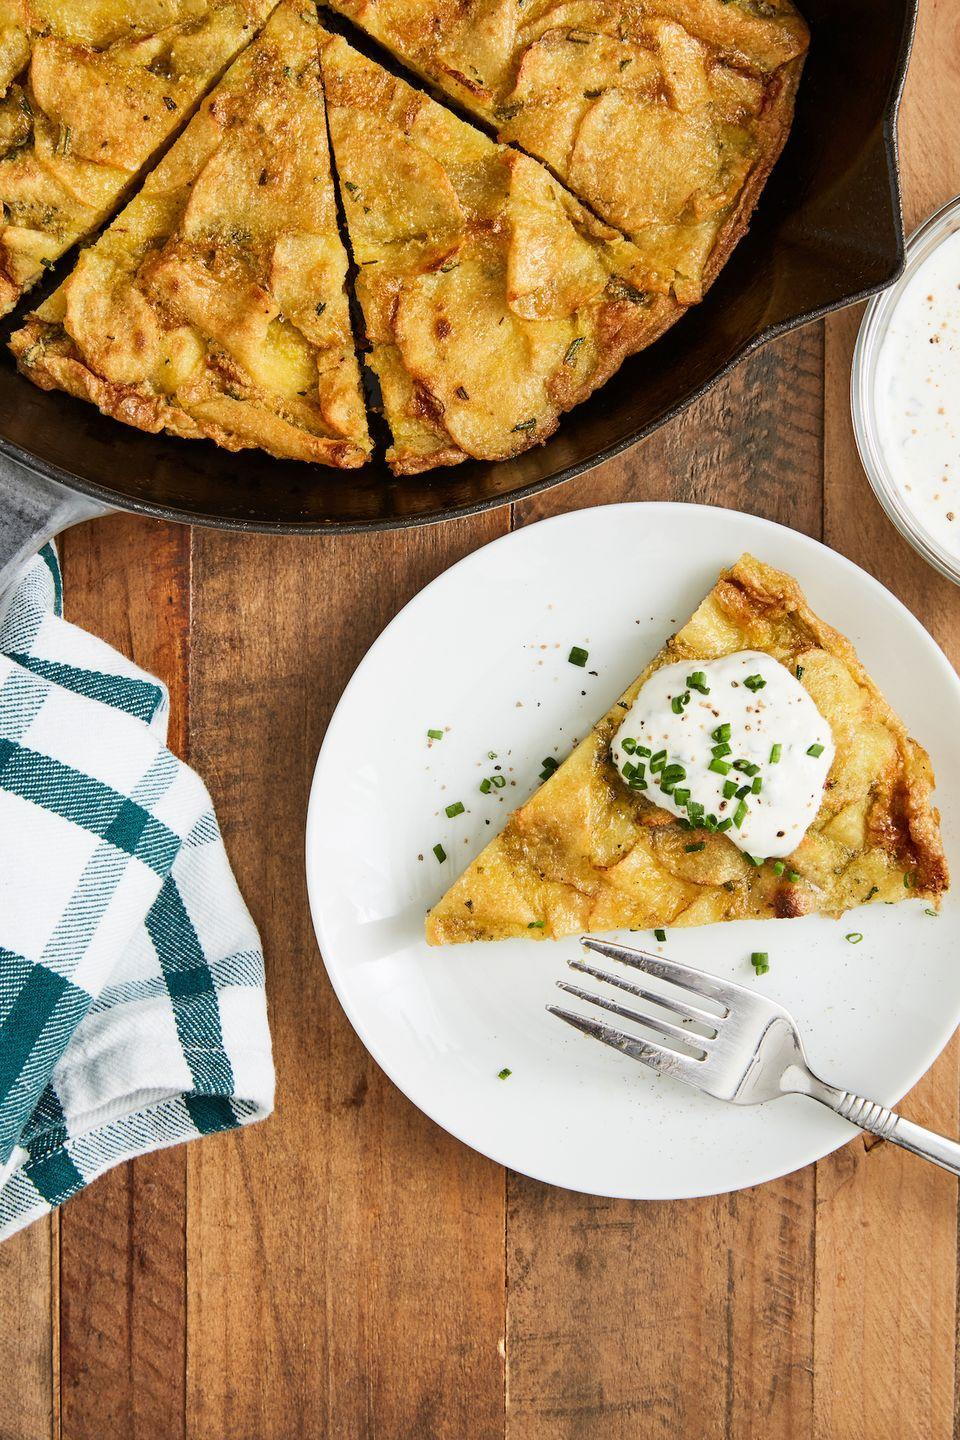 """<p>This is a great breakfast that has a super special secret ingredient. Mom will love it.</p><p>Get the recipe from <a href=""""https://www.delish.com/cooking/recipe-ideas/a30982221/best-spanish-tortilla-recipe/"""" rel=""""nofollow noopener"""" target=""""_blank"""" data-ylk=""""slk:Delish."""" class=""""link rapid-noclick-resp"""">Delish. </a></p>"""